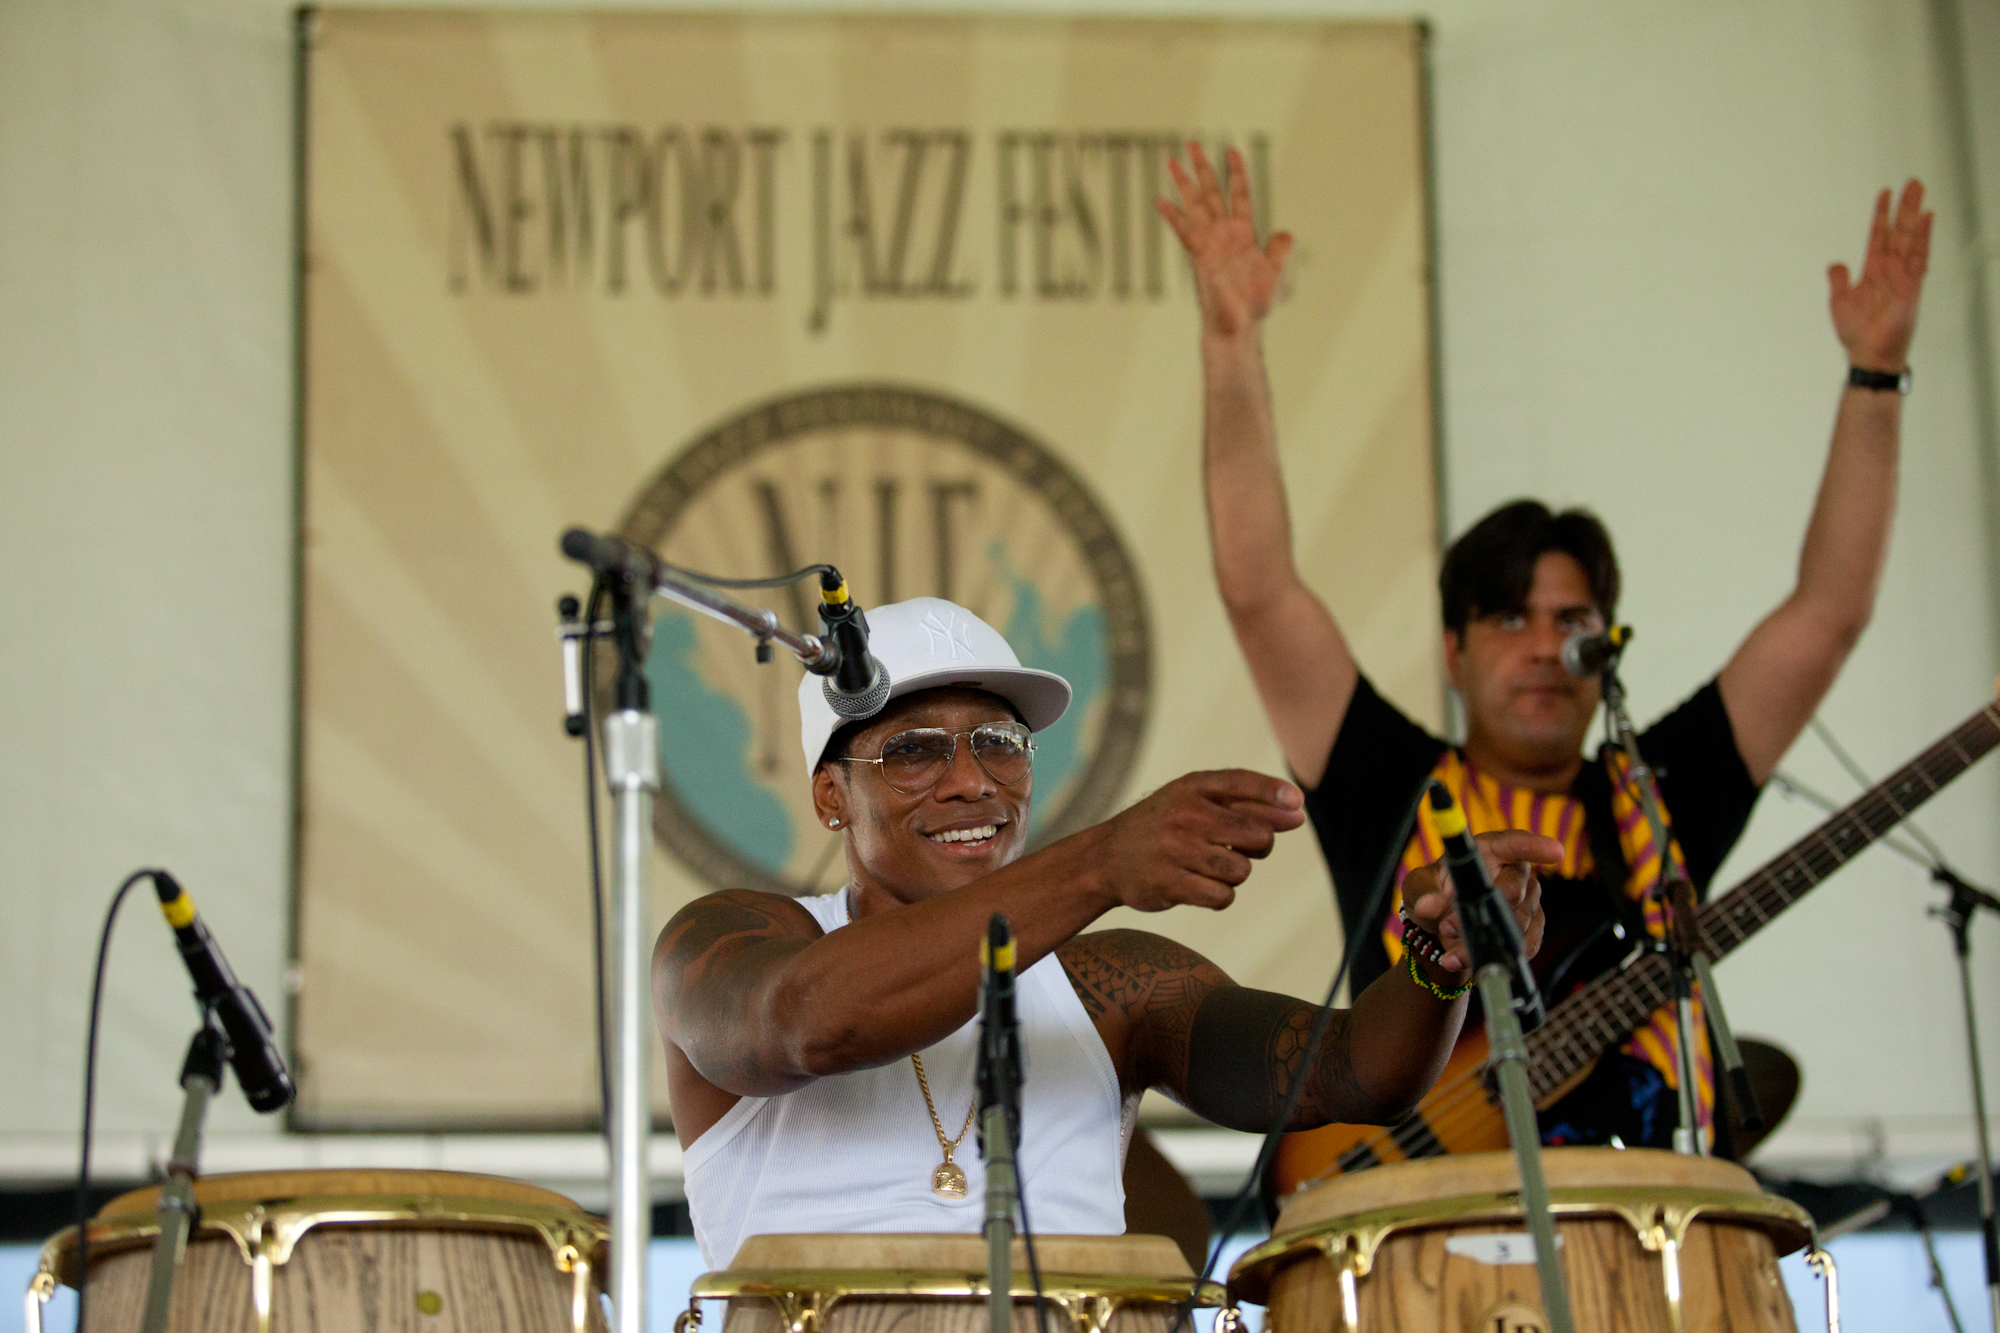 Behind the congas and microphone, Pedrito Martinez led a quartet which went way beyond what you'd think of Afro-Cuban music or jazz.